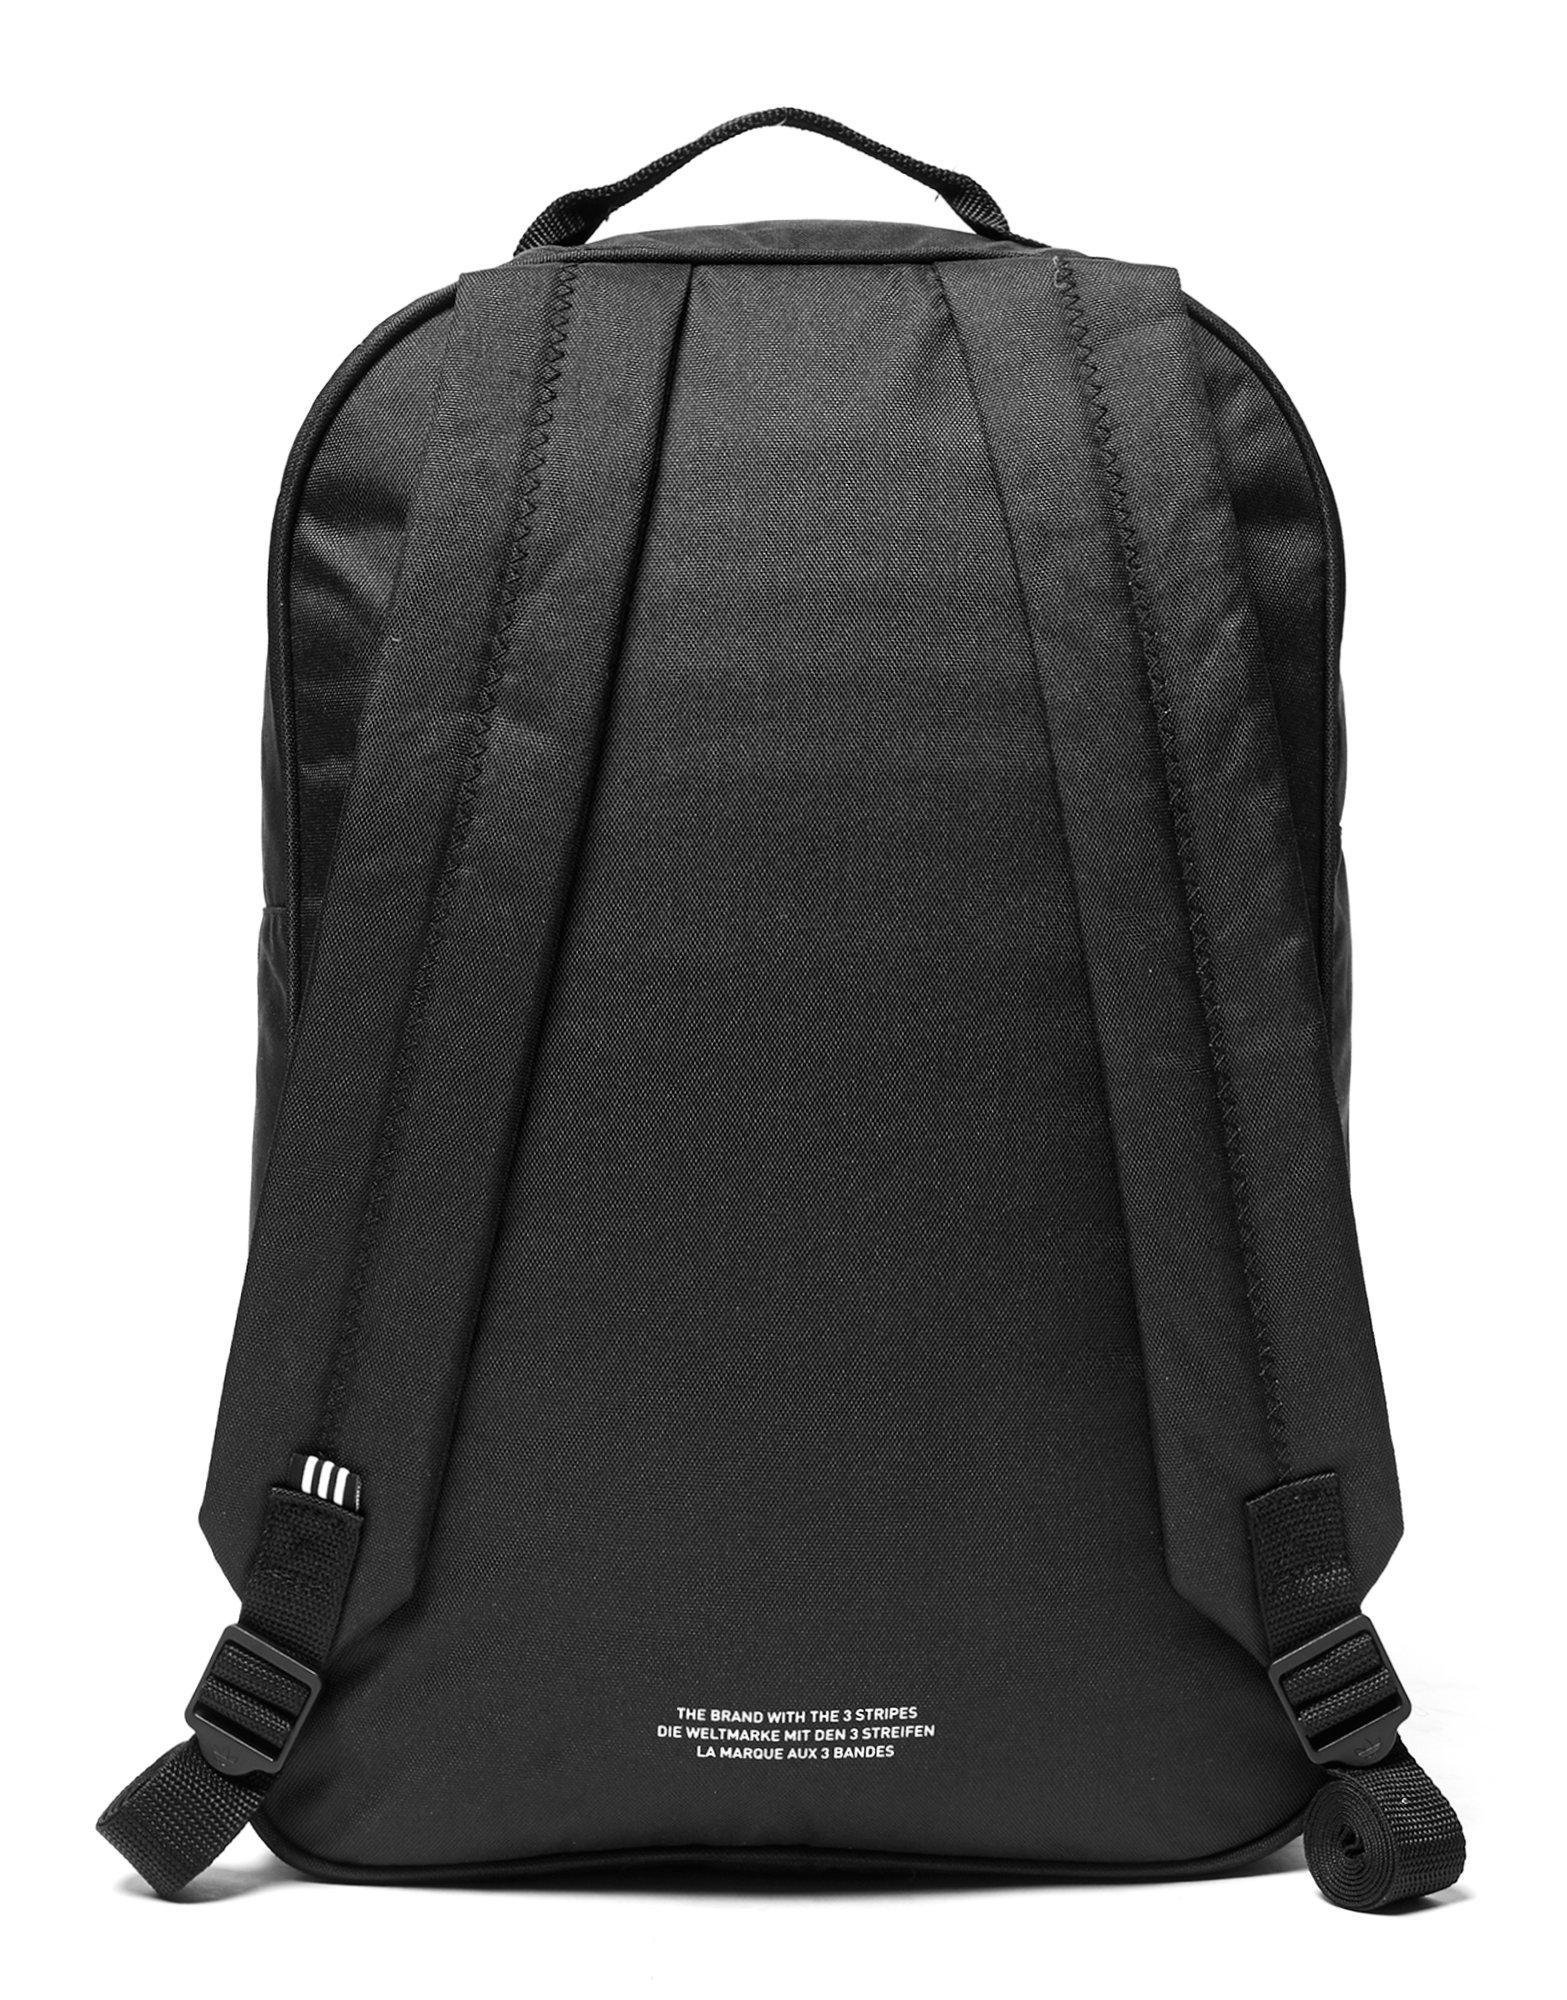 633009a670 Jd Sports Personalised Backpack